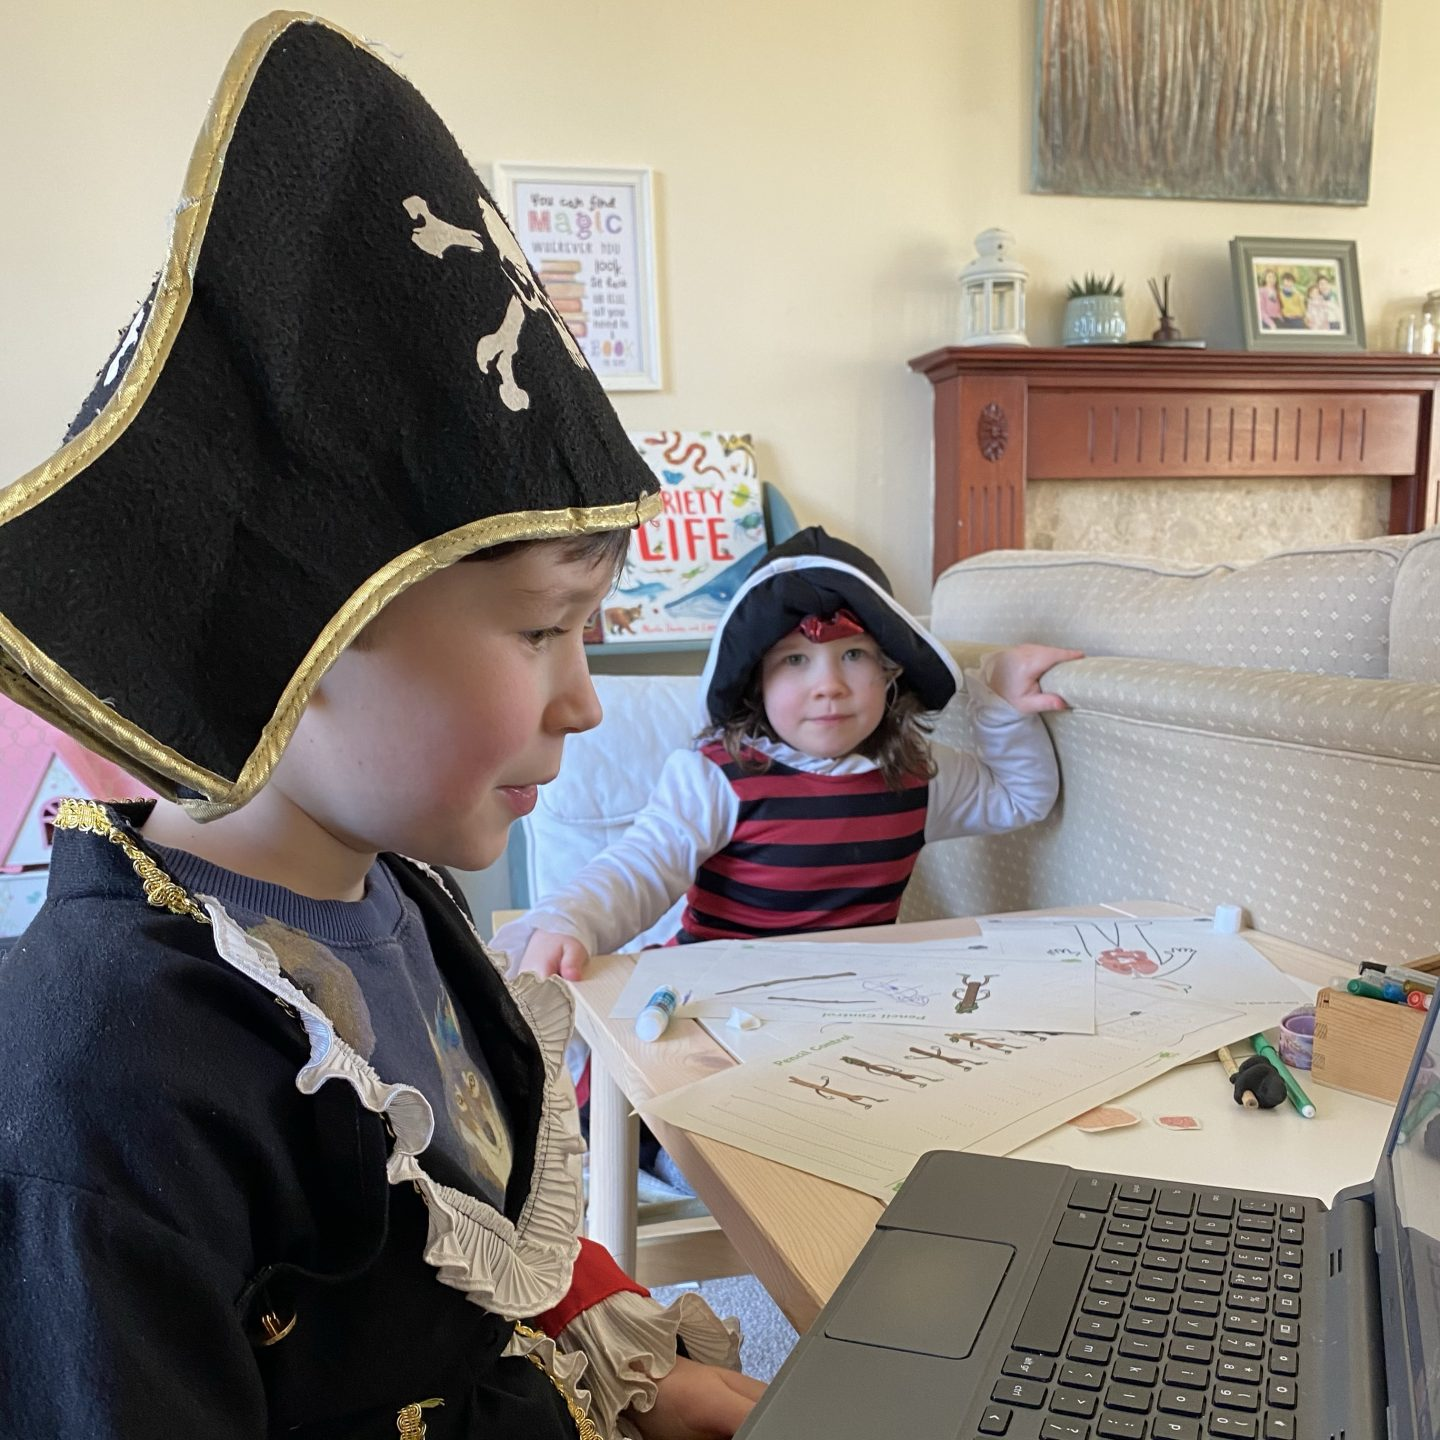 mumschool with two children dressed as pirates telling a story